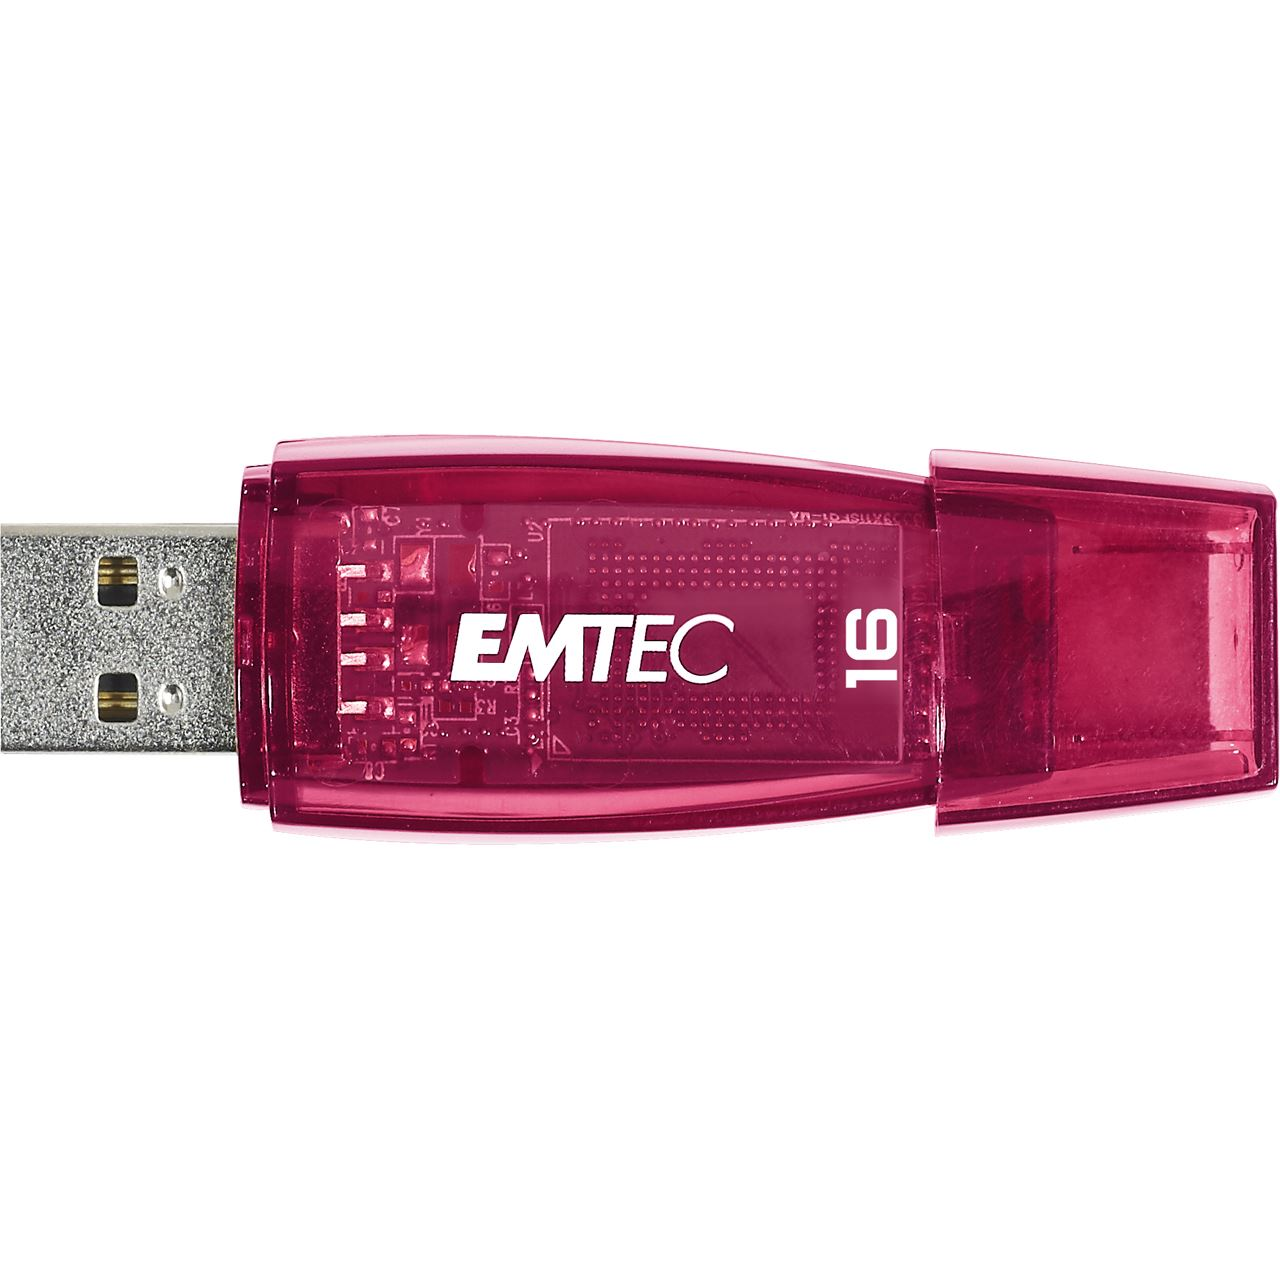 16 gb emtec usb stick rot usb 2 0 16gb sticks. Black Bedroom Furniture Sets. Home Design Ideas